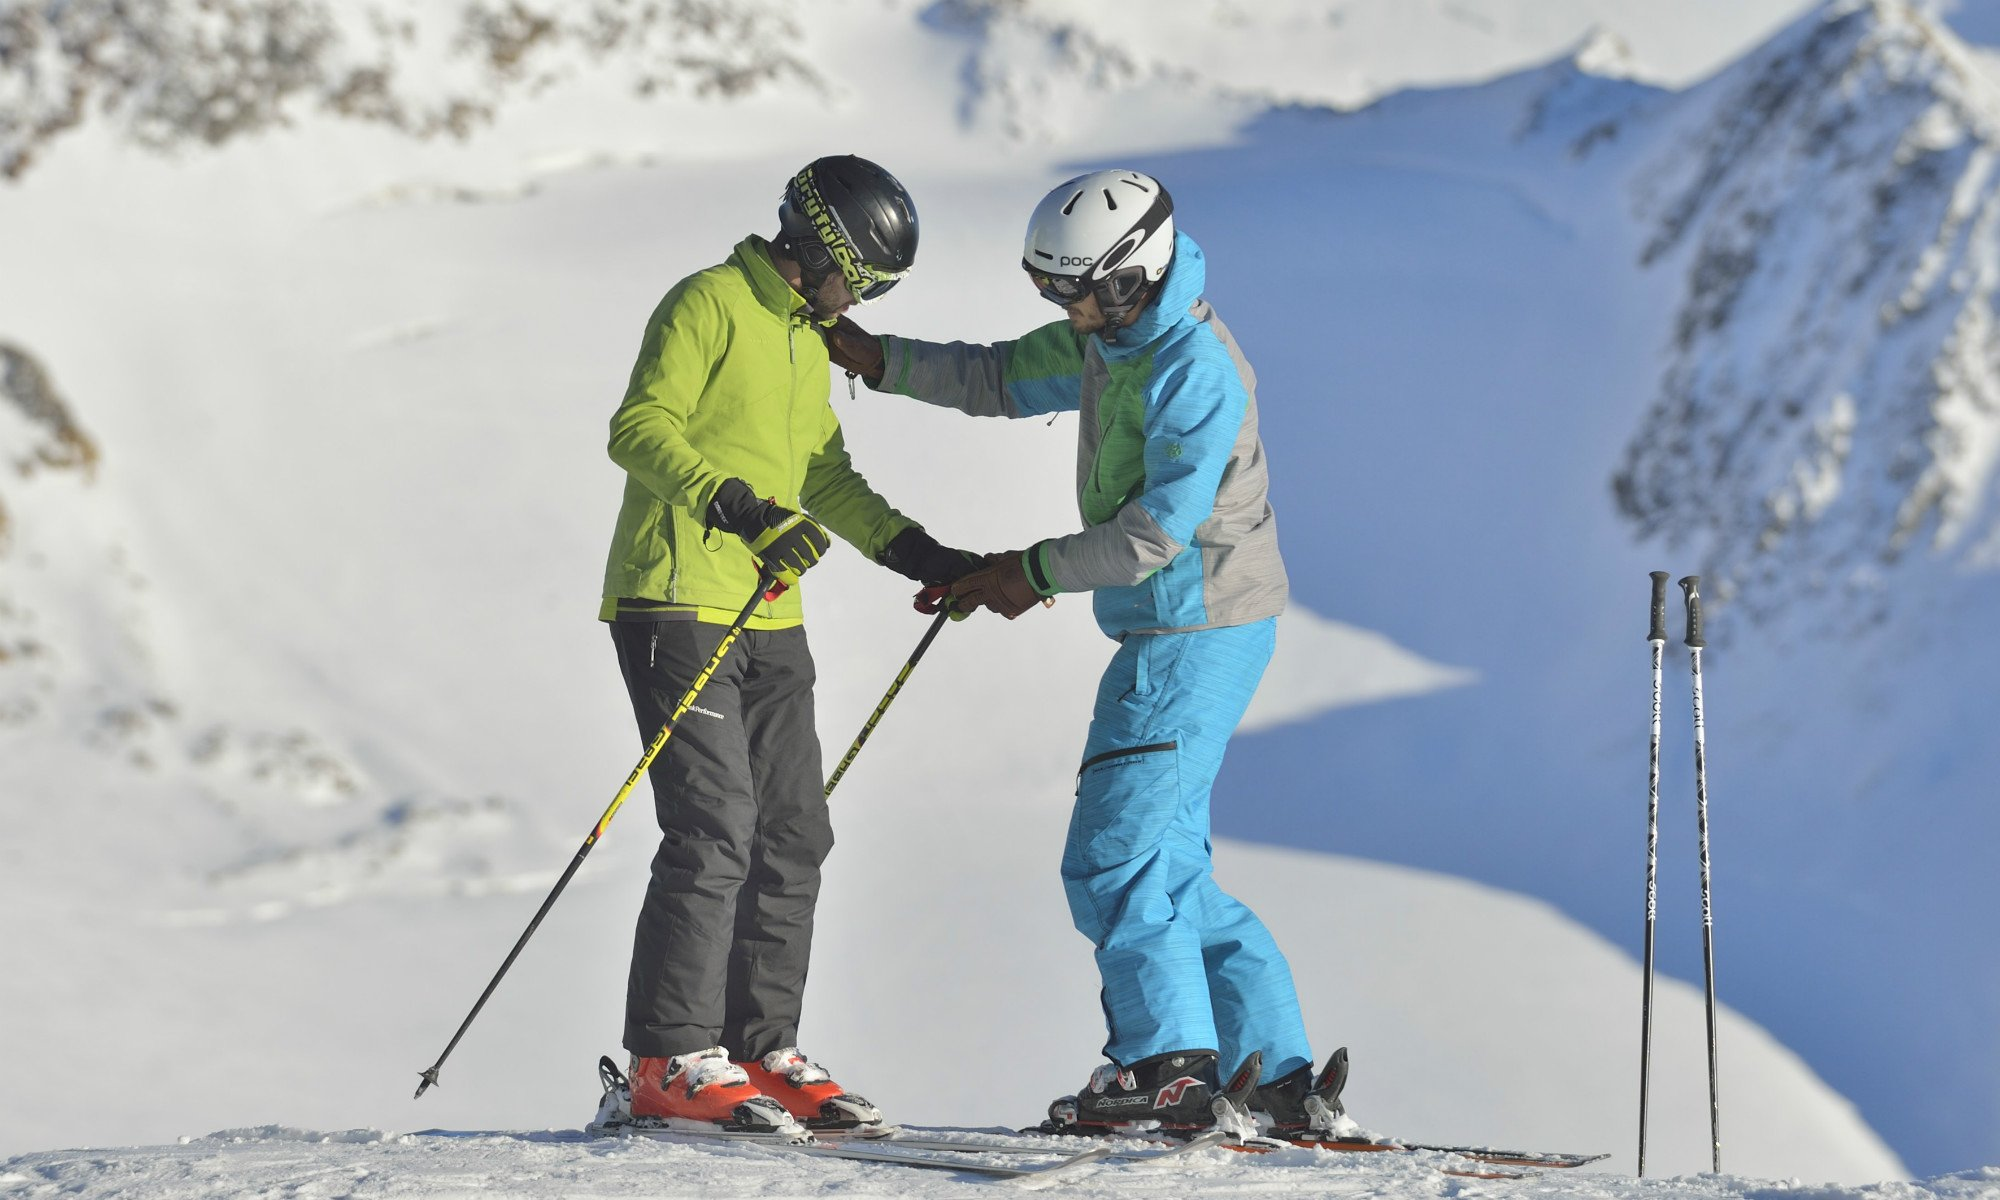 A ski instructor helping a participant to stand on the skis correctly.